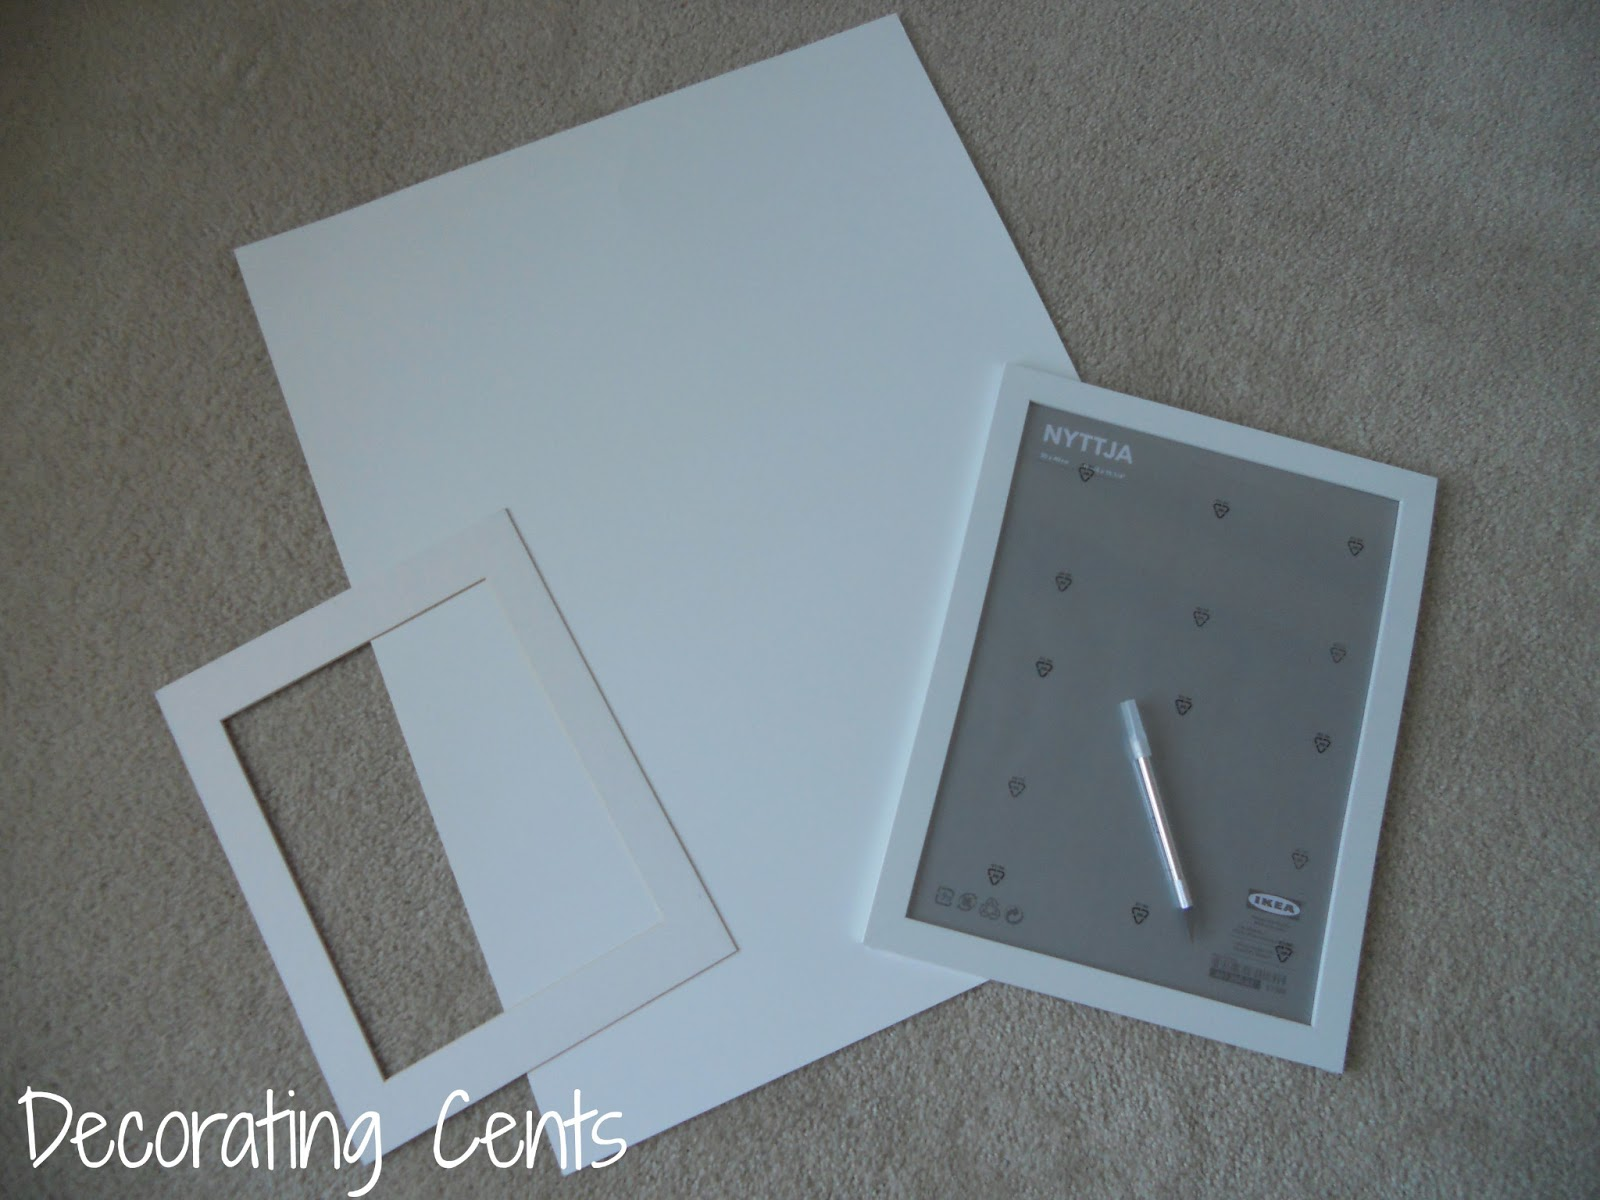 Decorating Cents: DIY Photo Mattes